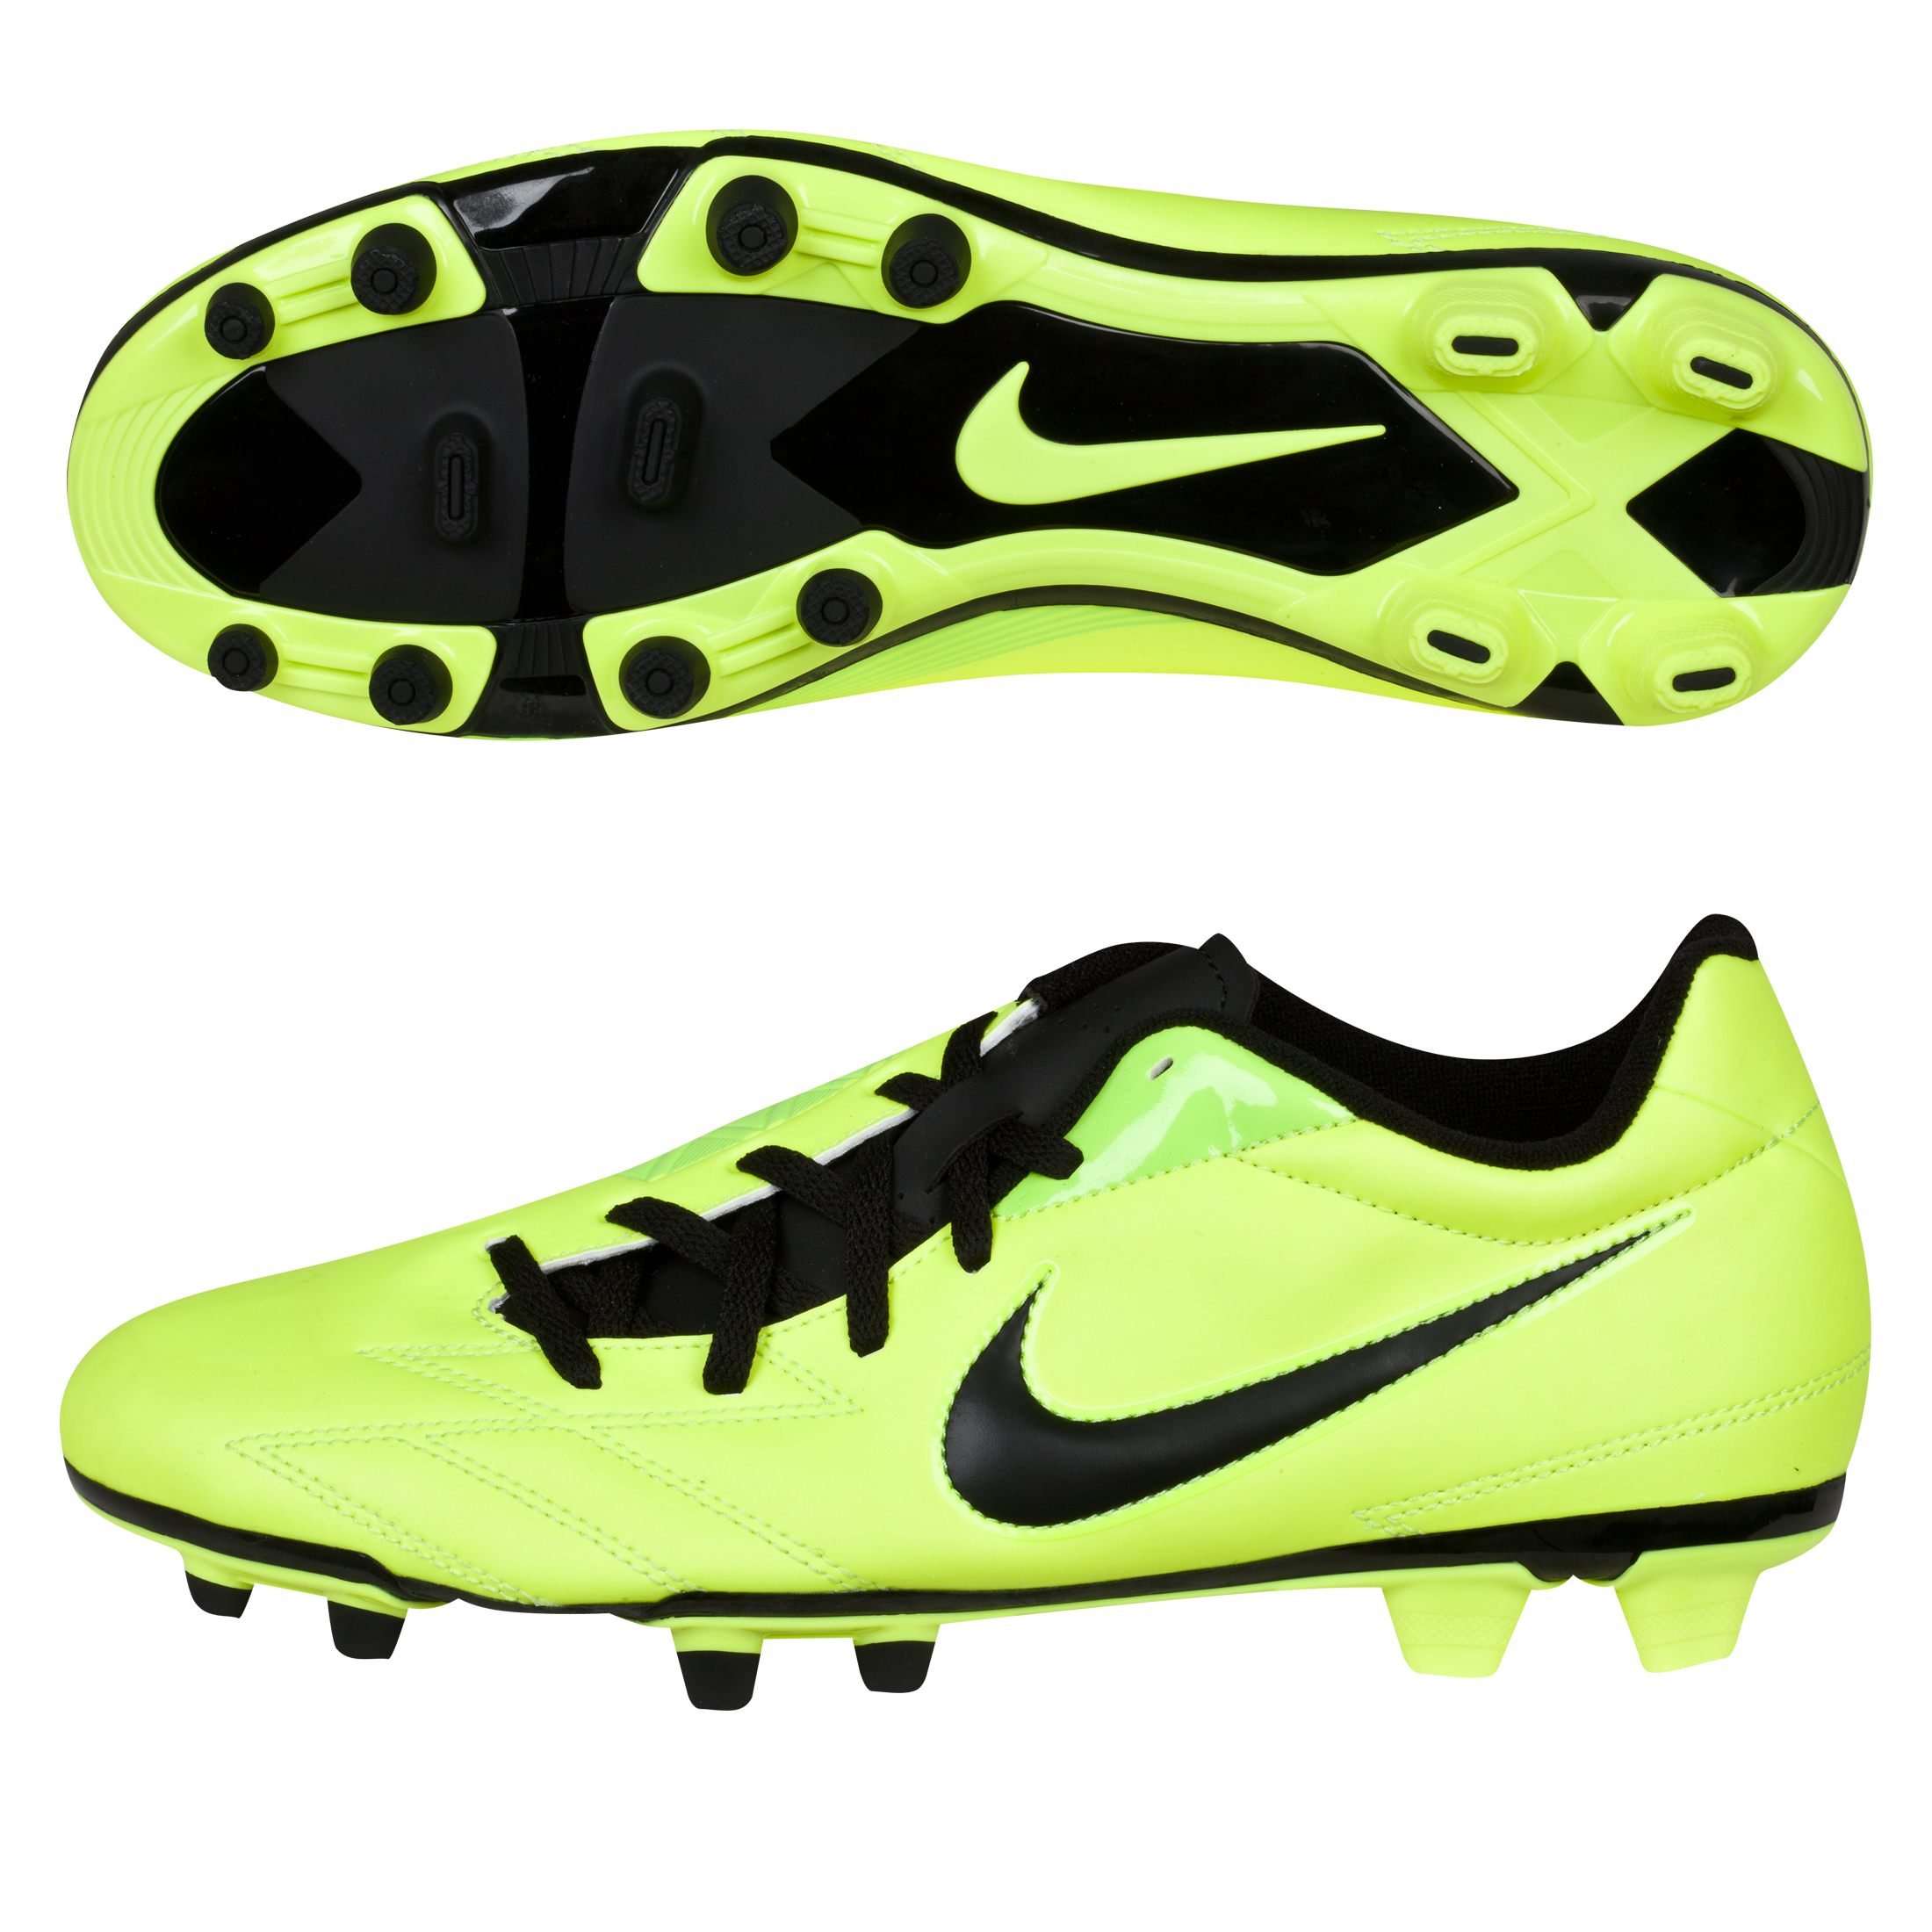 Nike Total90 Exacto IV Firm Ground Football Boots - Volt/Black/Citron